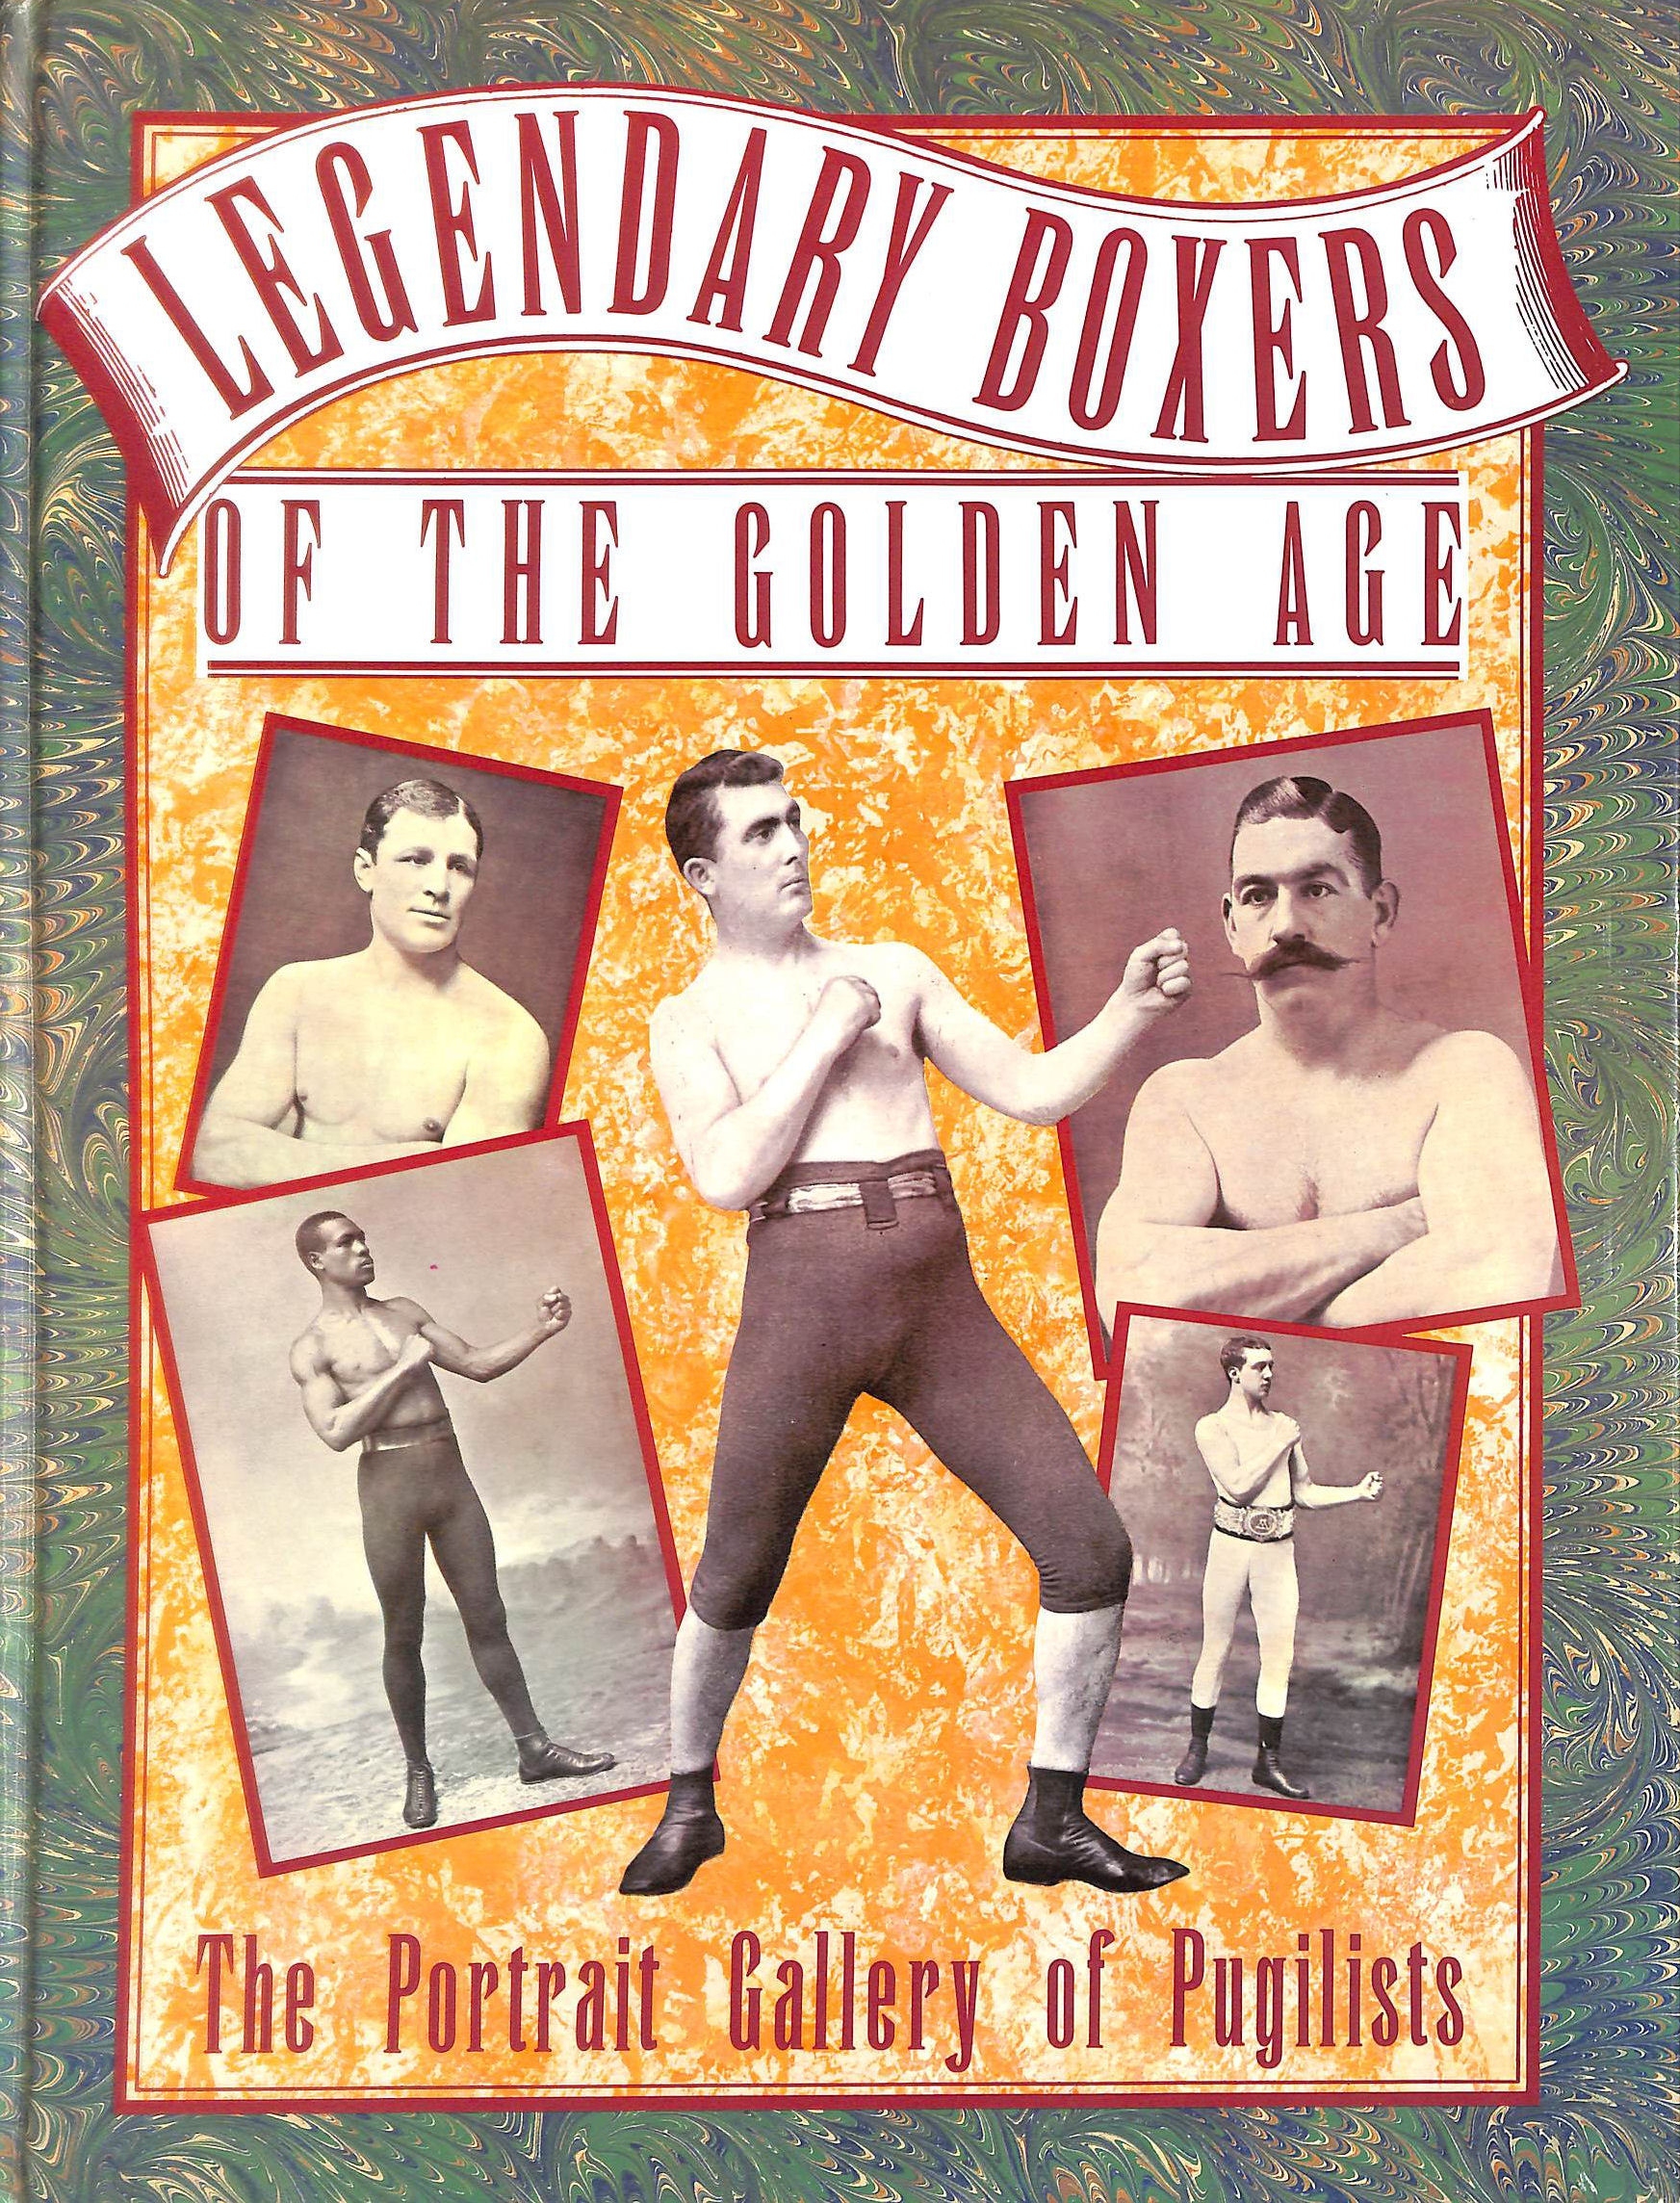 Image for LEGENDARY BOXERS OF THE GOLDEN AGE OF ENGLAND, AMERICA, AUSTRALIA.